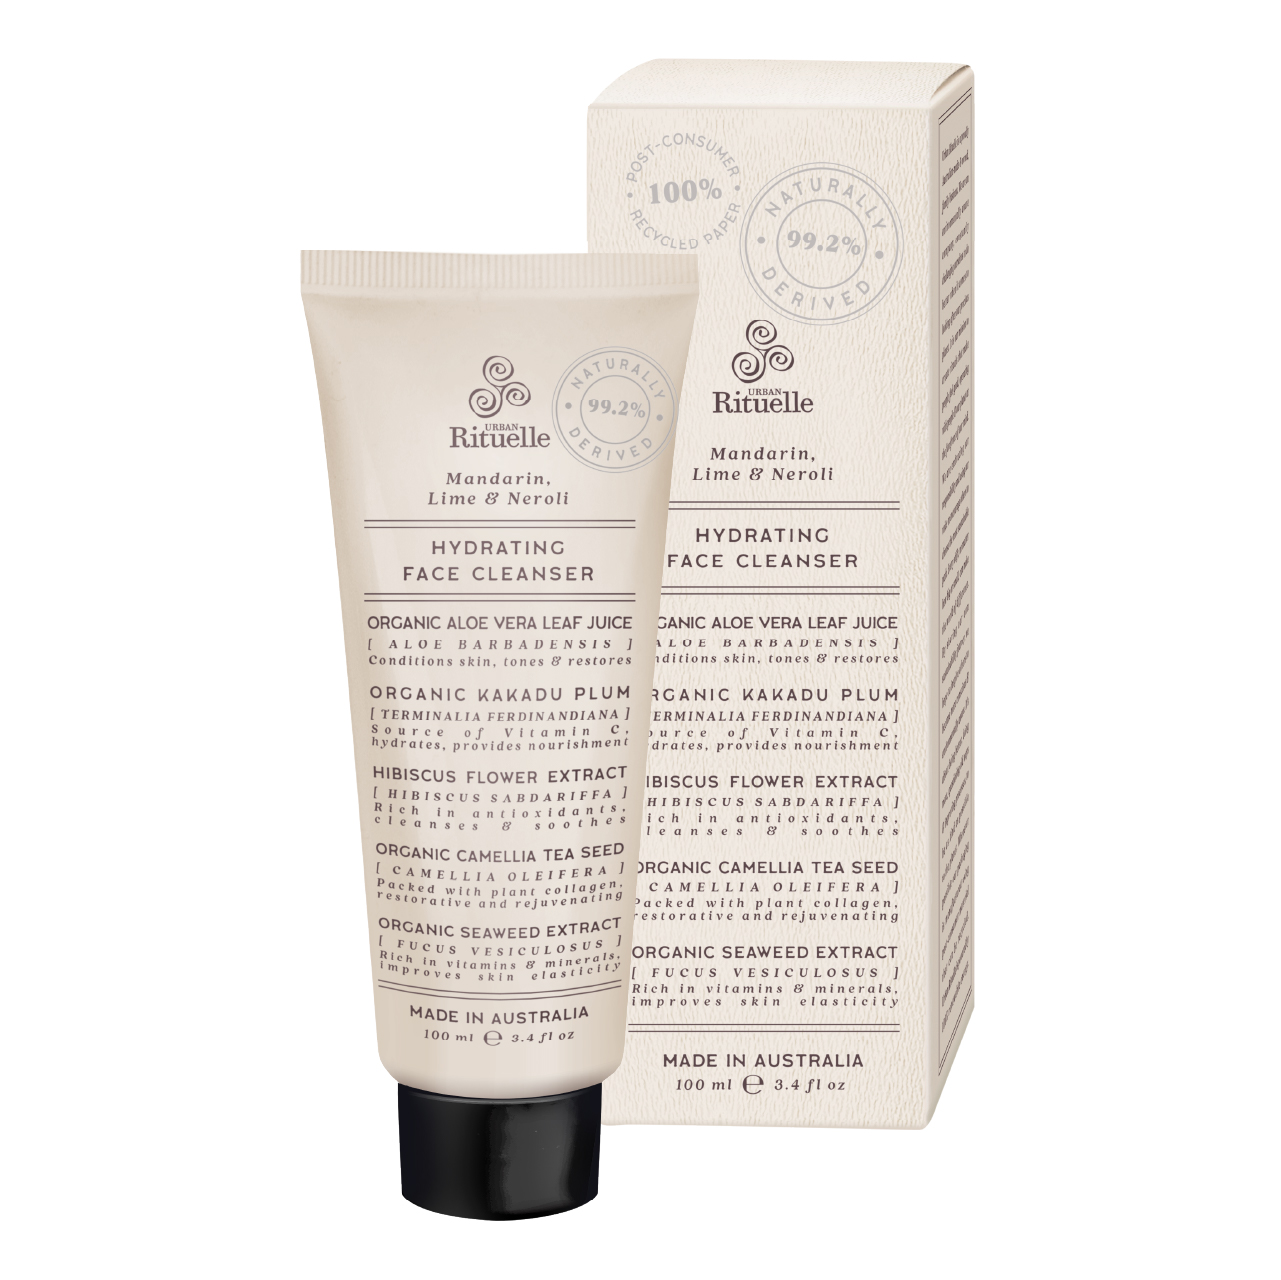 Natural Remedy - Hydrating Face Cleanser